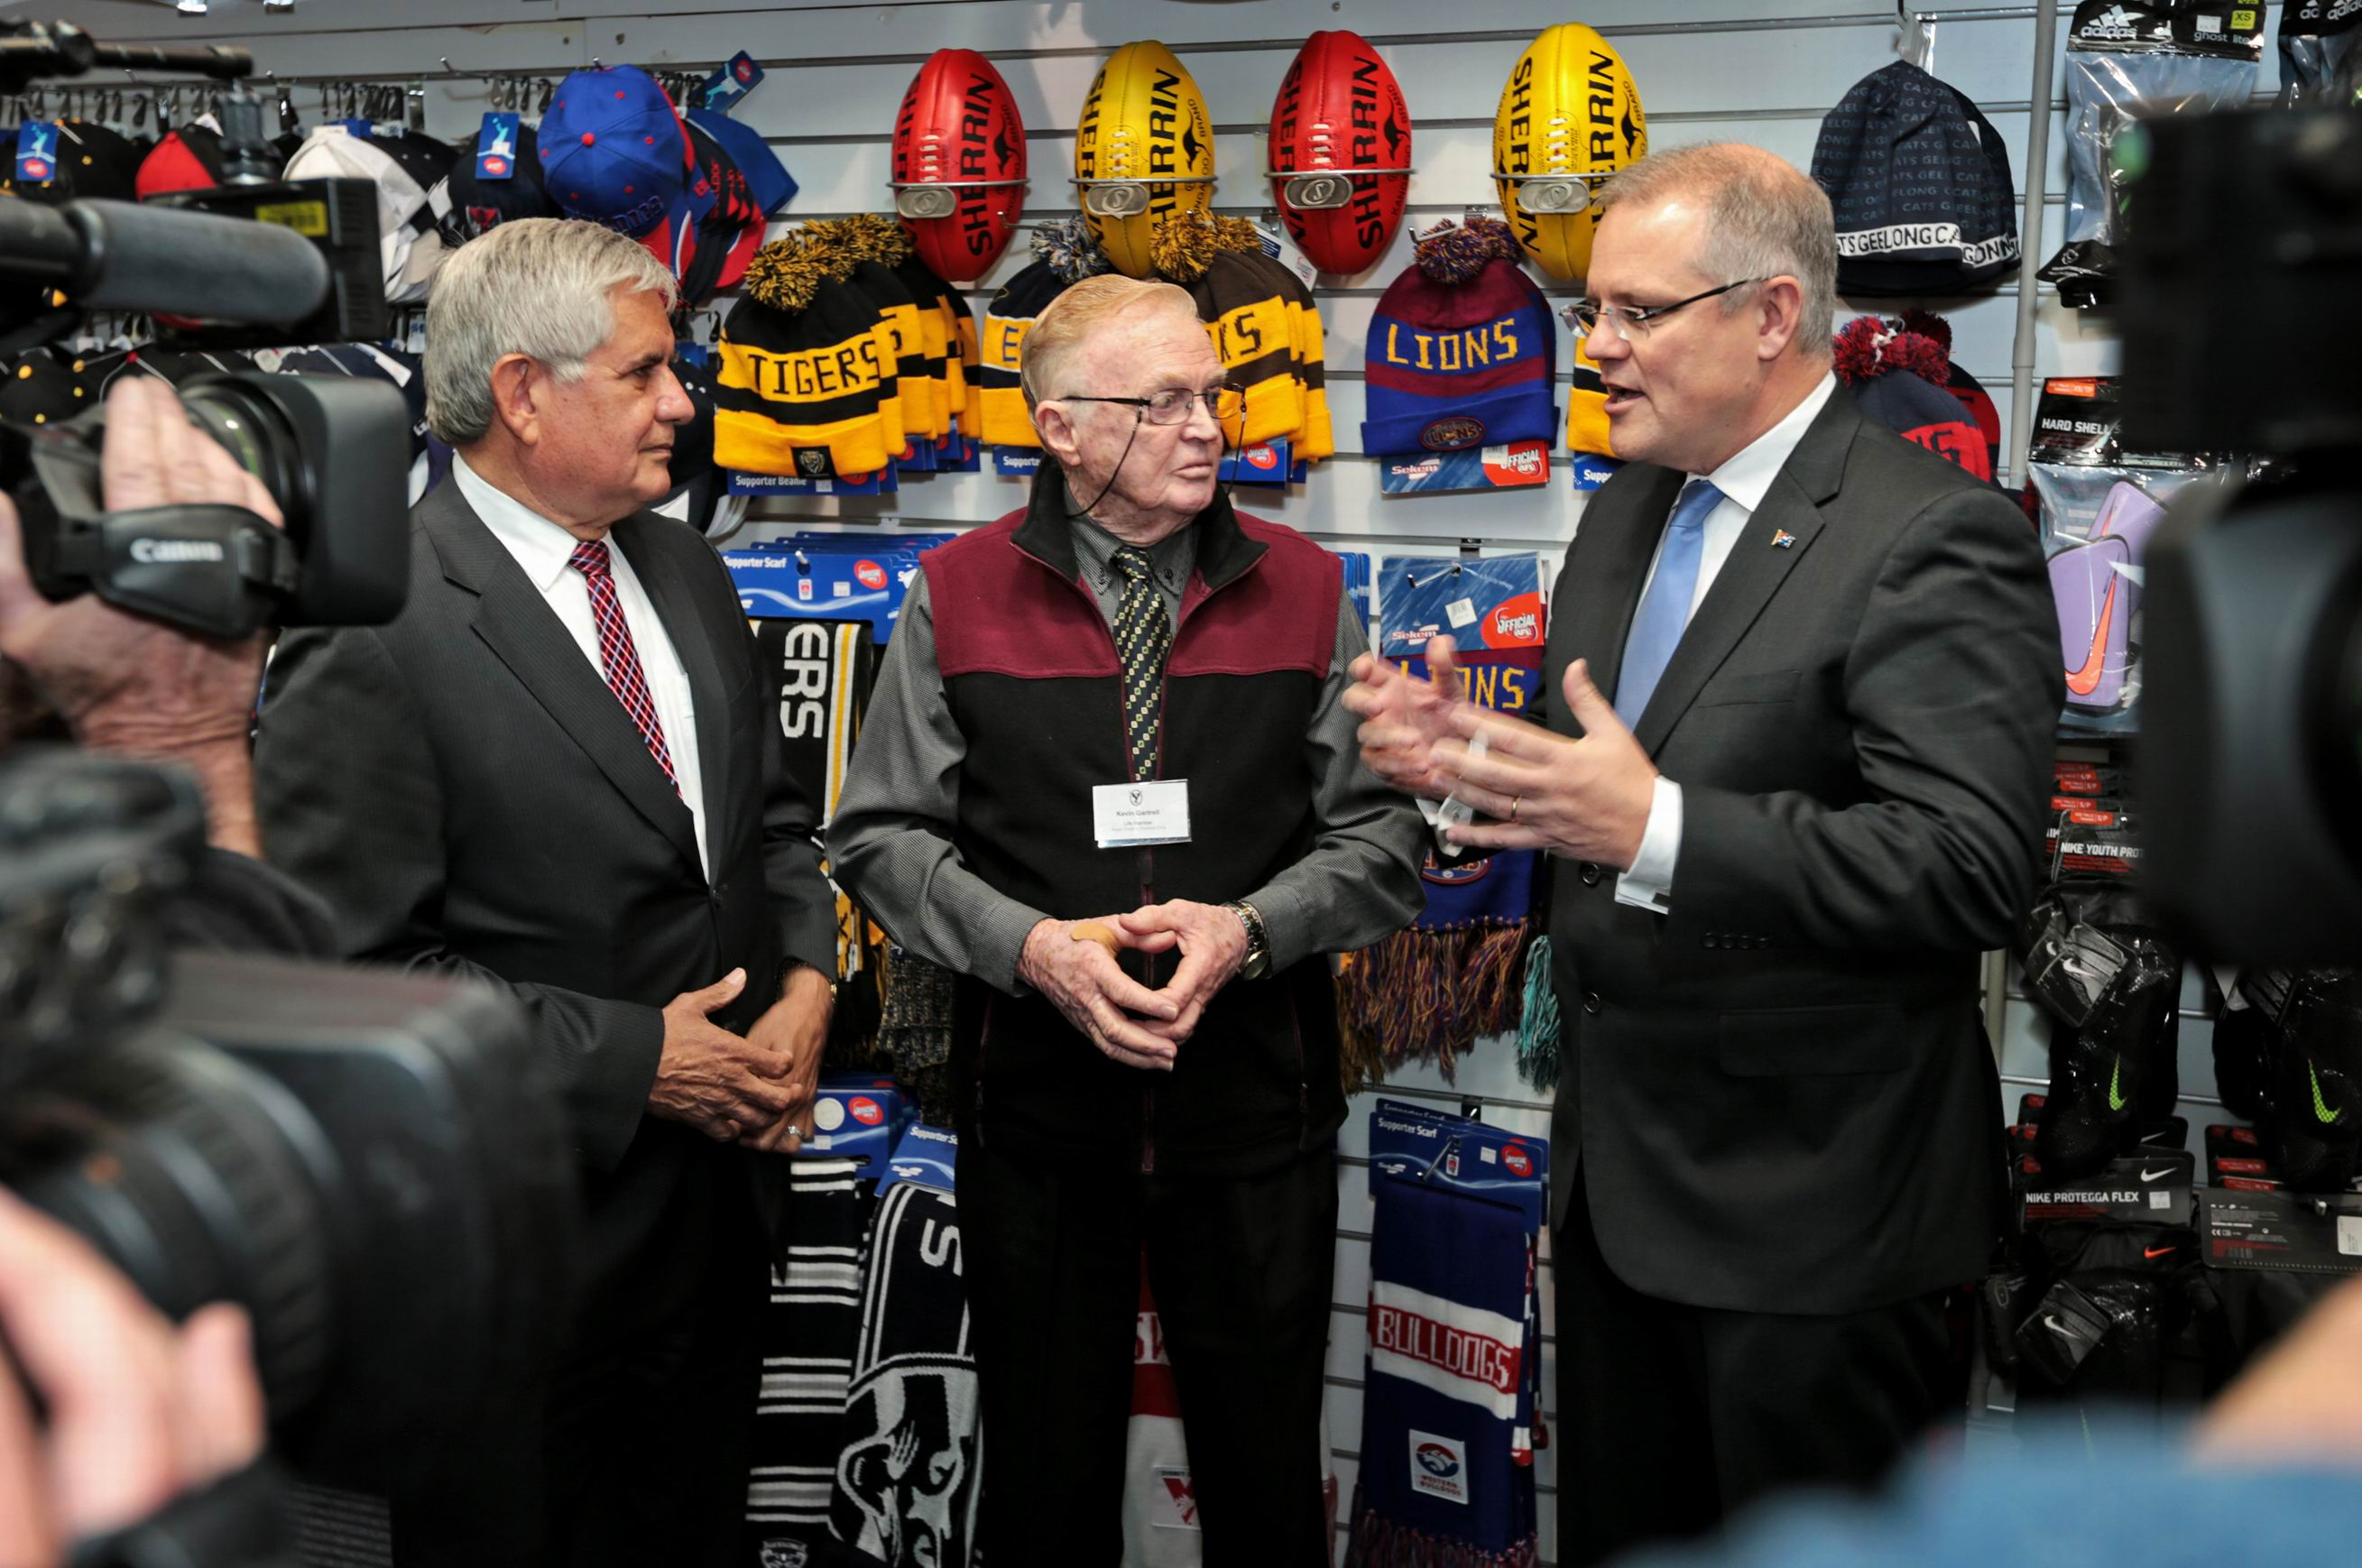 Ken Wyatt with Kevin Gartrell (Slater-Gartrell Sports store in Midland) and Treasurer Scott Morrison. Picture: David Baylis